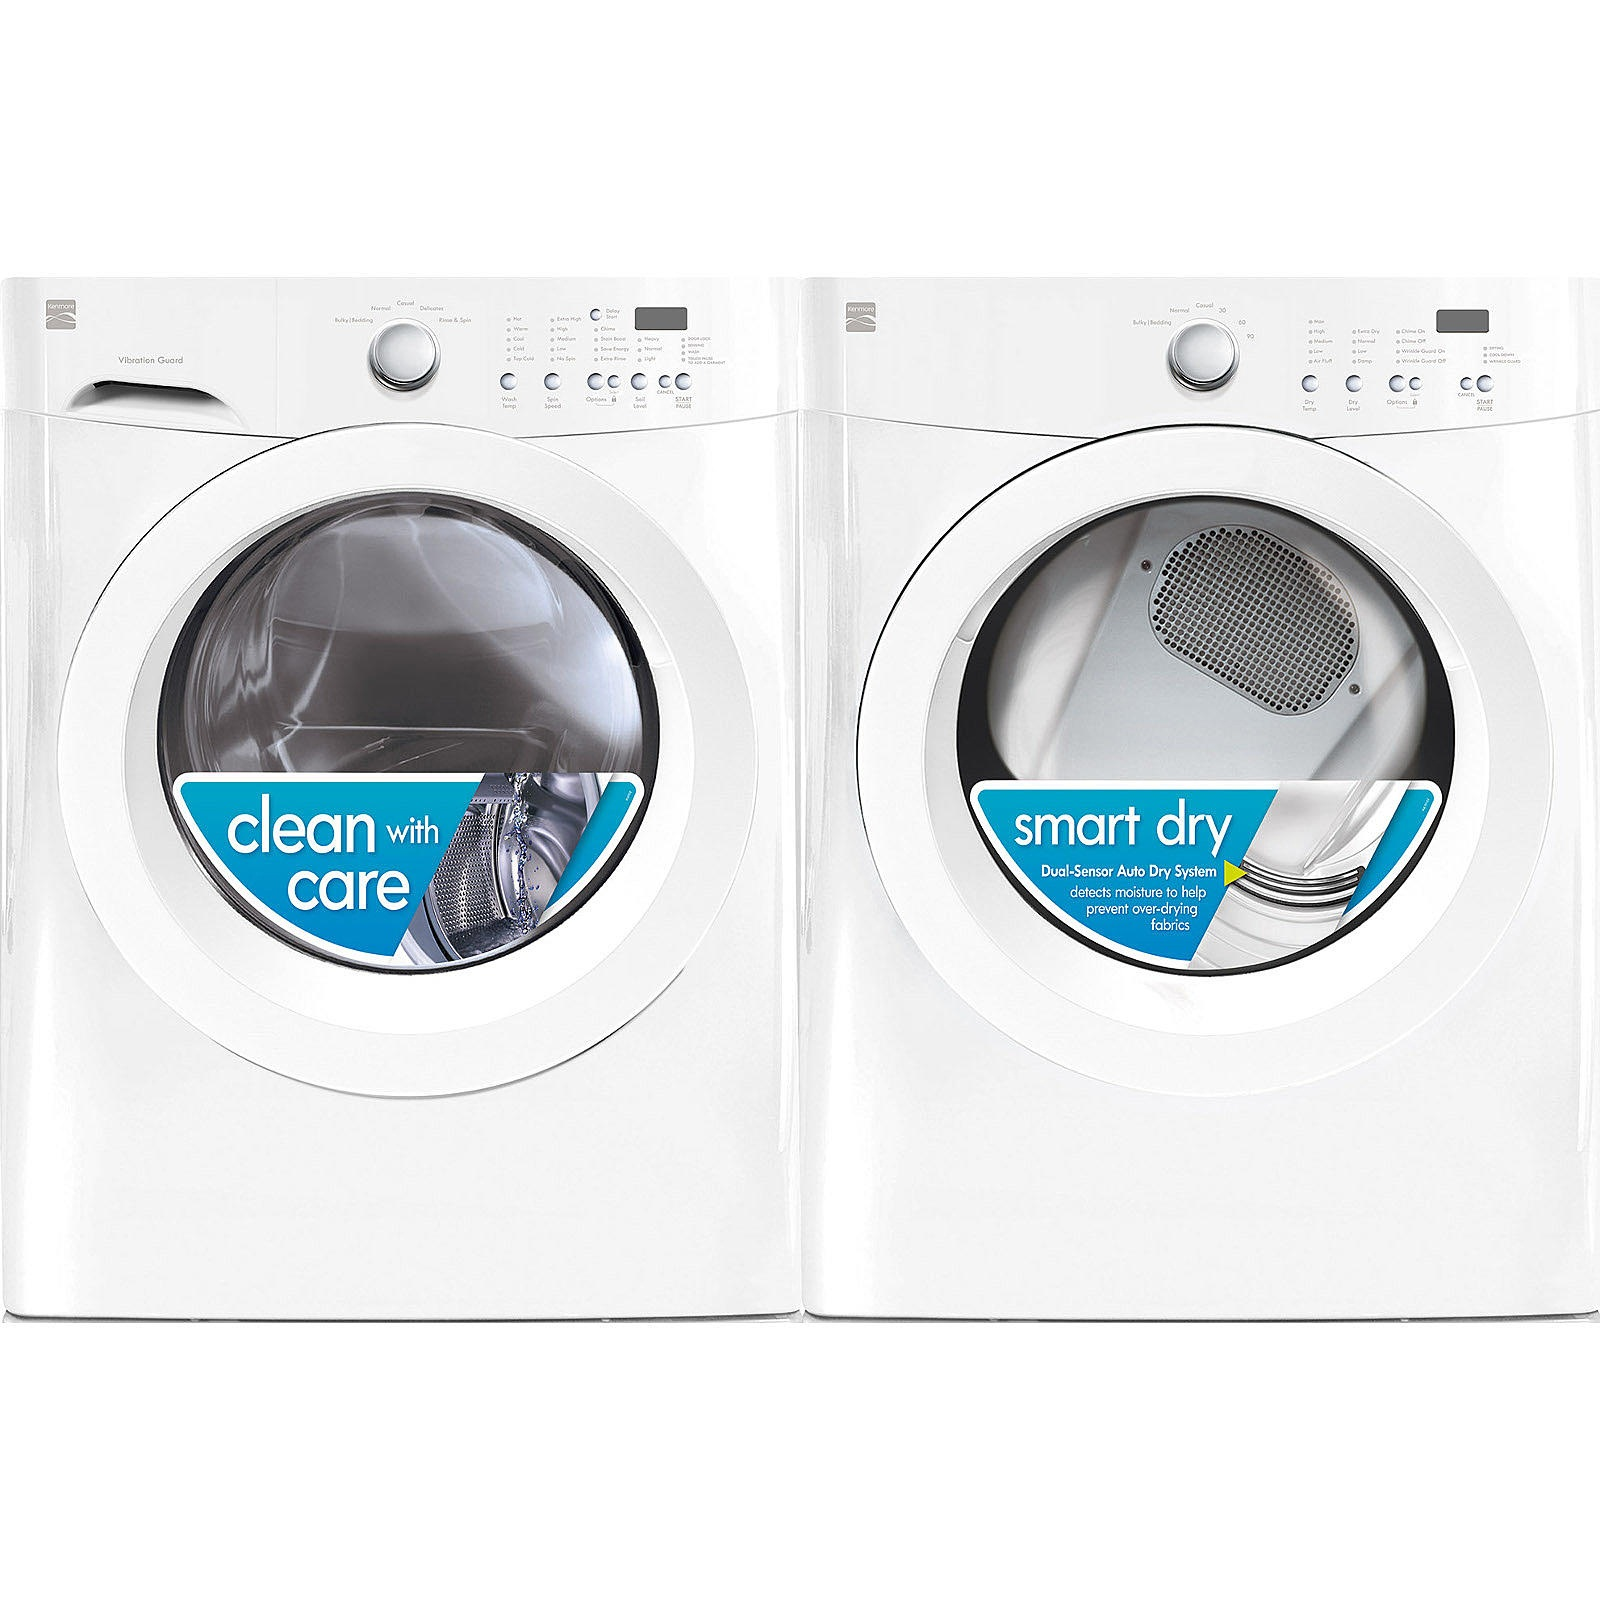 Kenmore 3.9 cu. ft. Front-Load Washer & 7.0 cu. ft. Electric Dryer w/ Wrinkle Guard